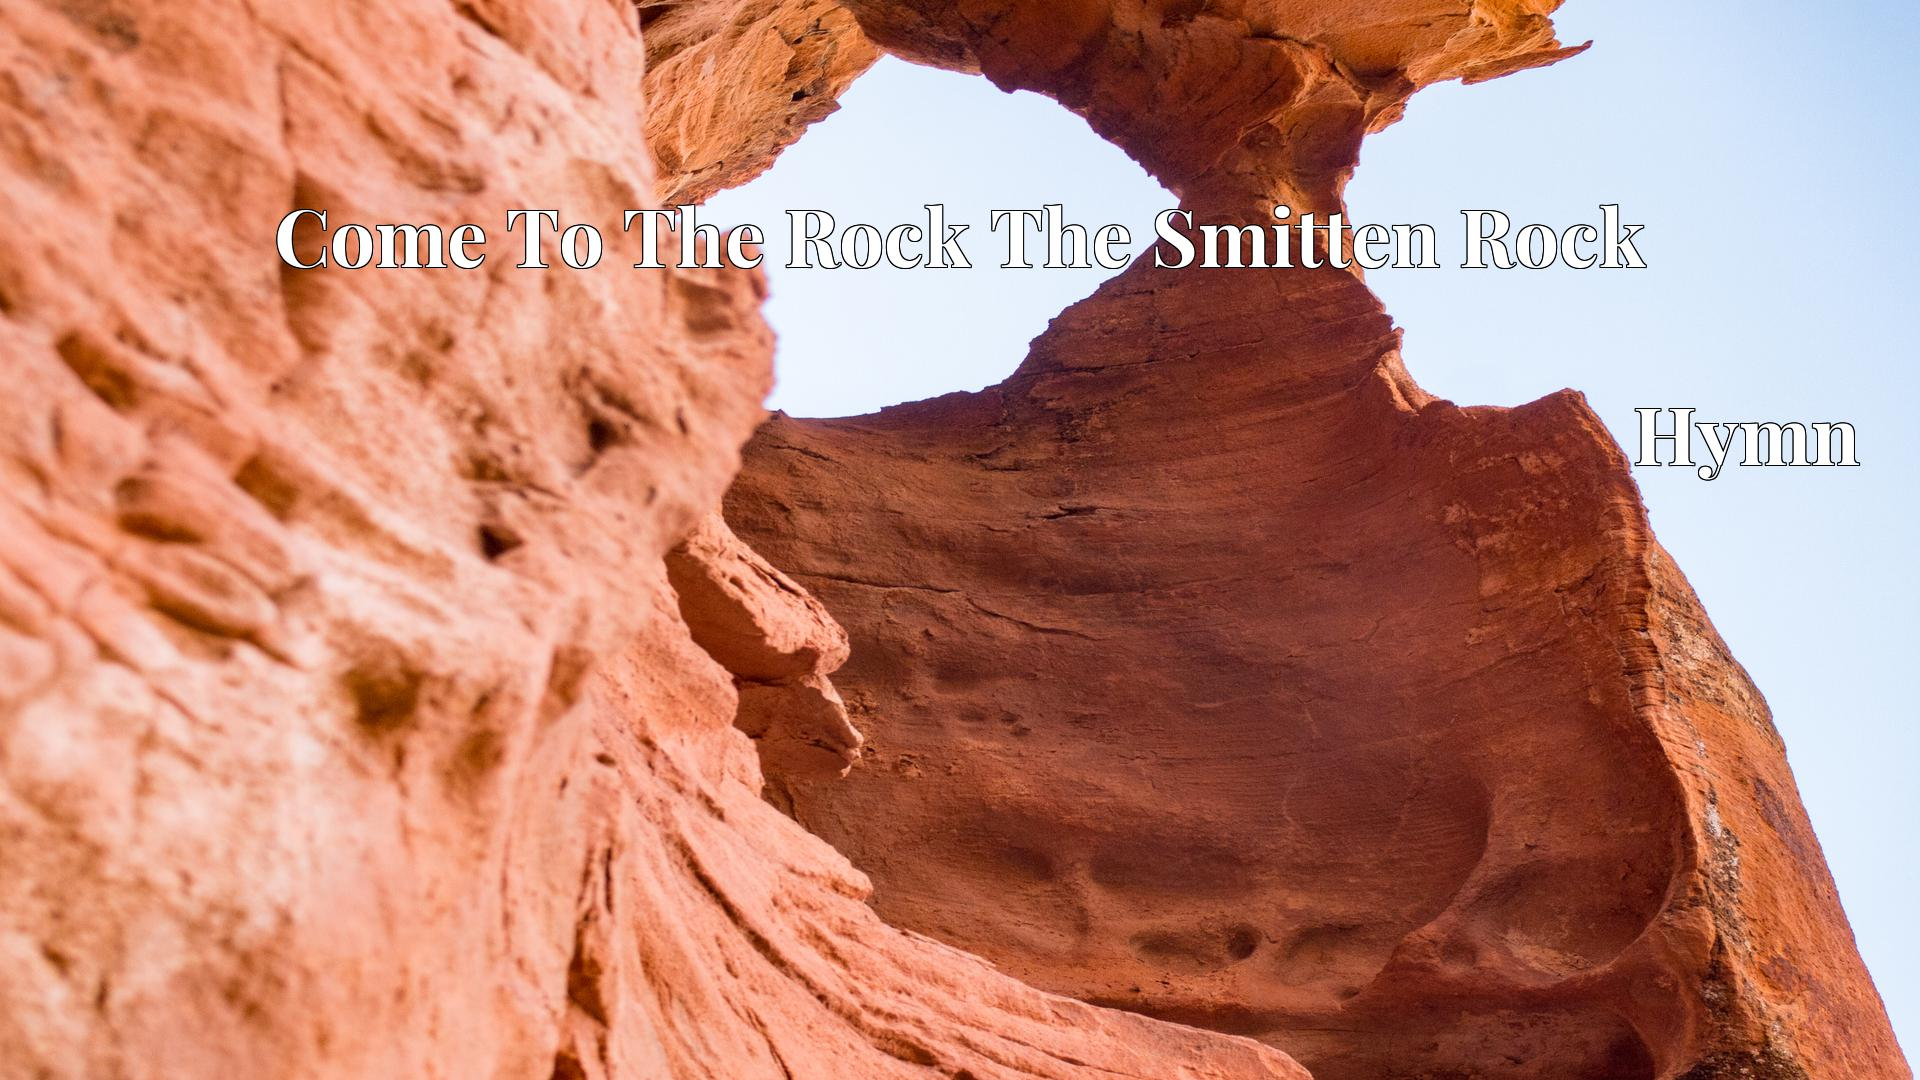 Come To The Rock The Smitten Rock - Hymn